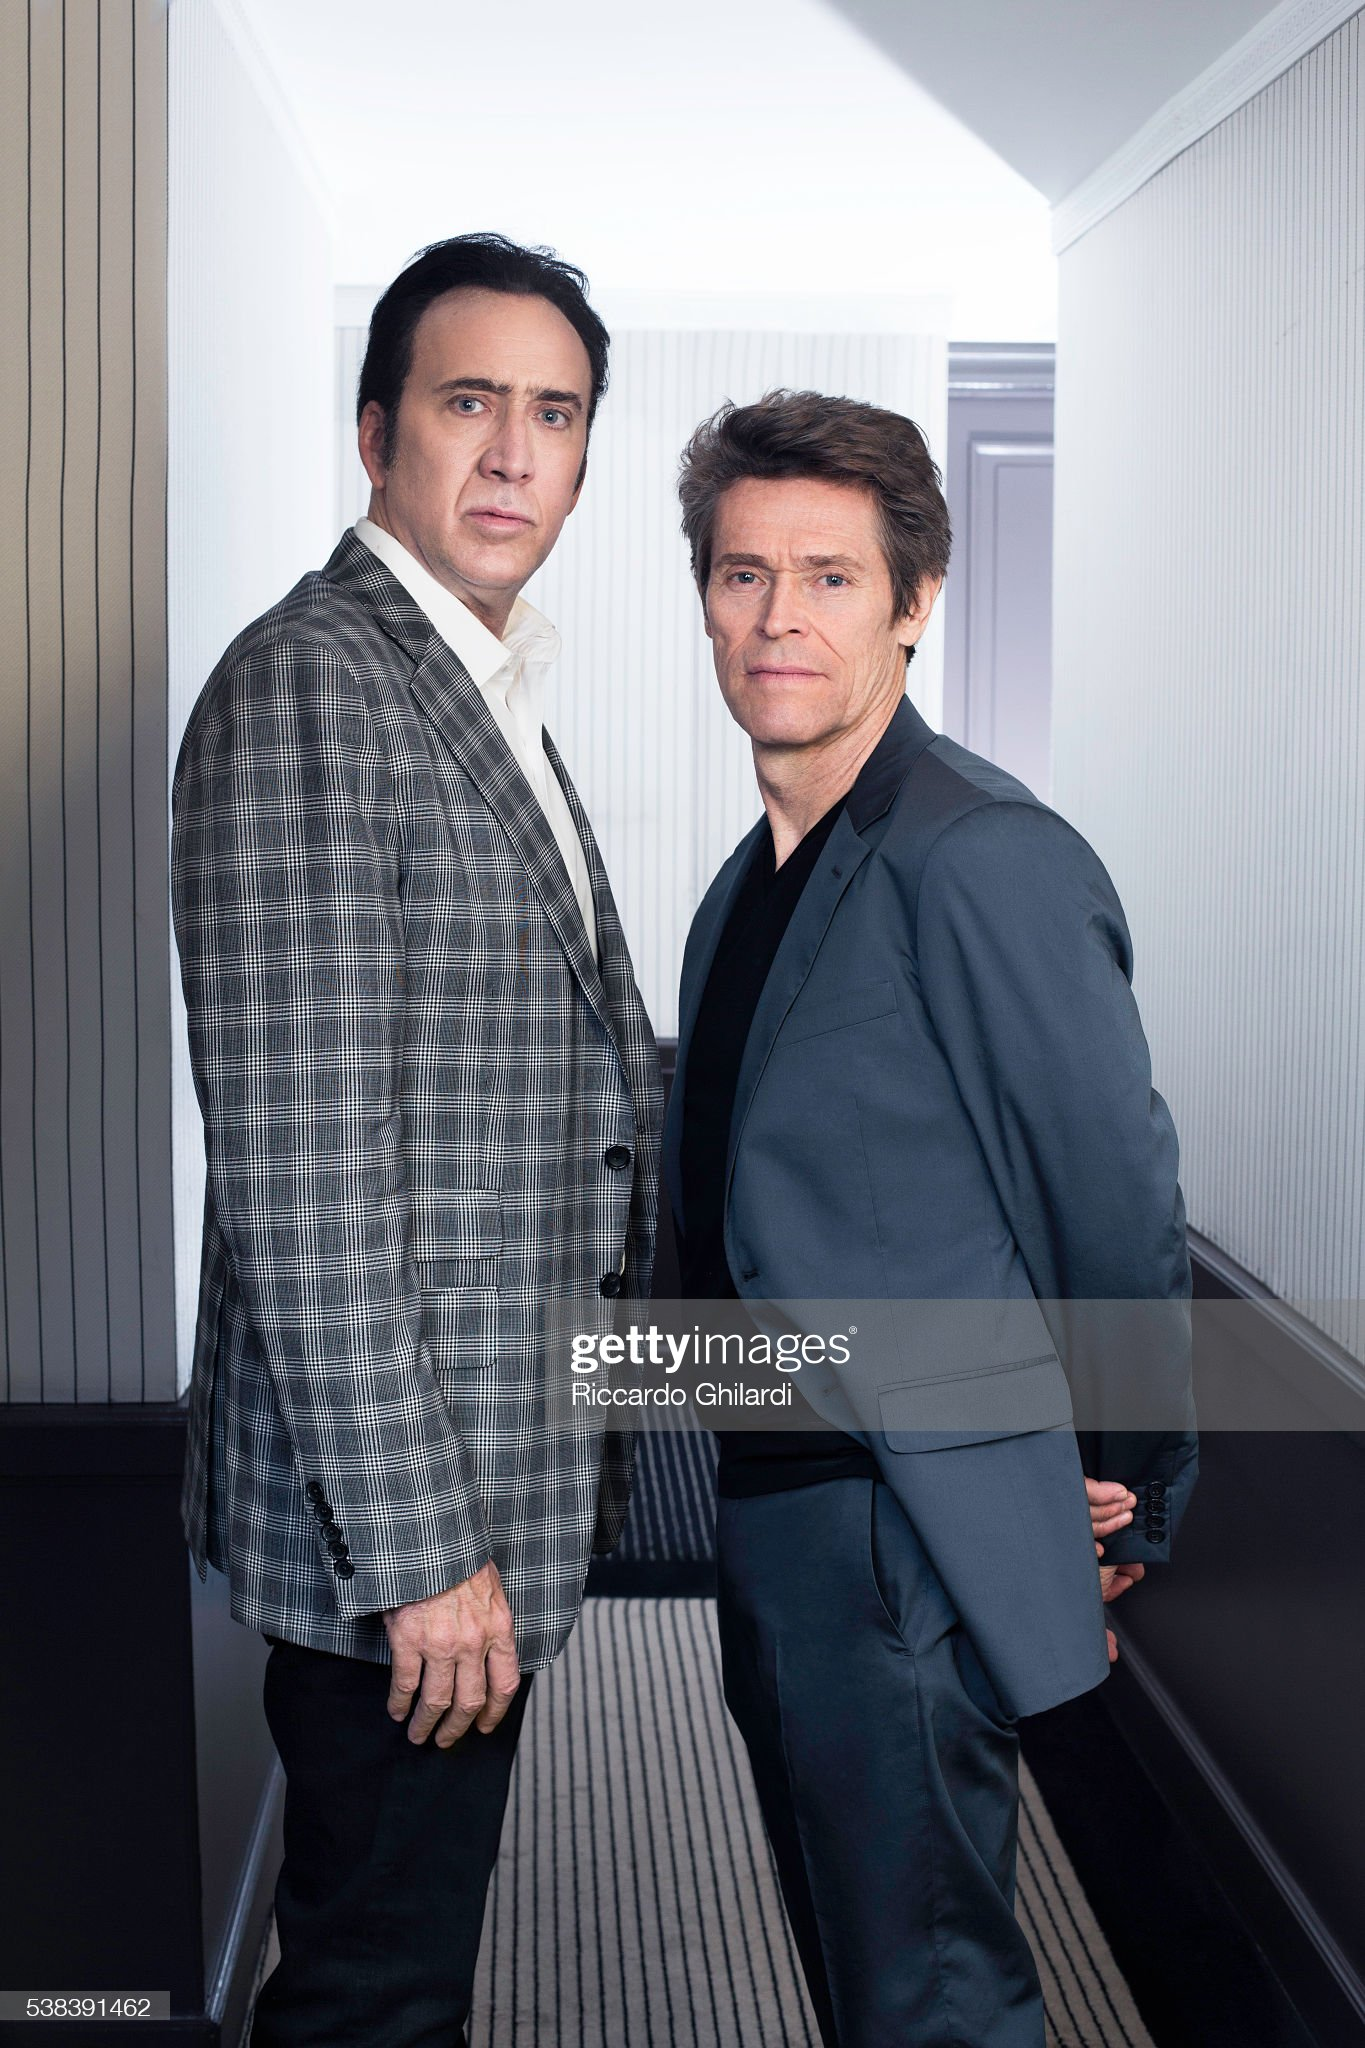 ¿Cuánto mide Willem Dafoe? - Altura - Real height Actors-nicolas-cage-and-willem-dafoe-are-photographed-for-self-on-picture-id538391462?s=2048x2048